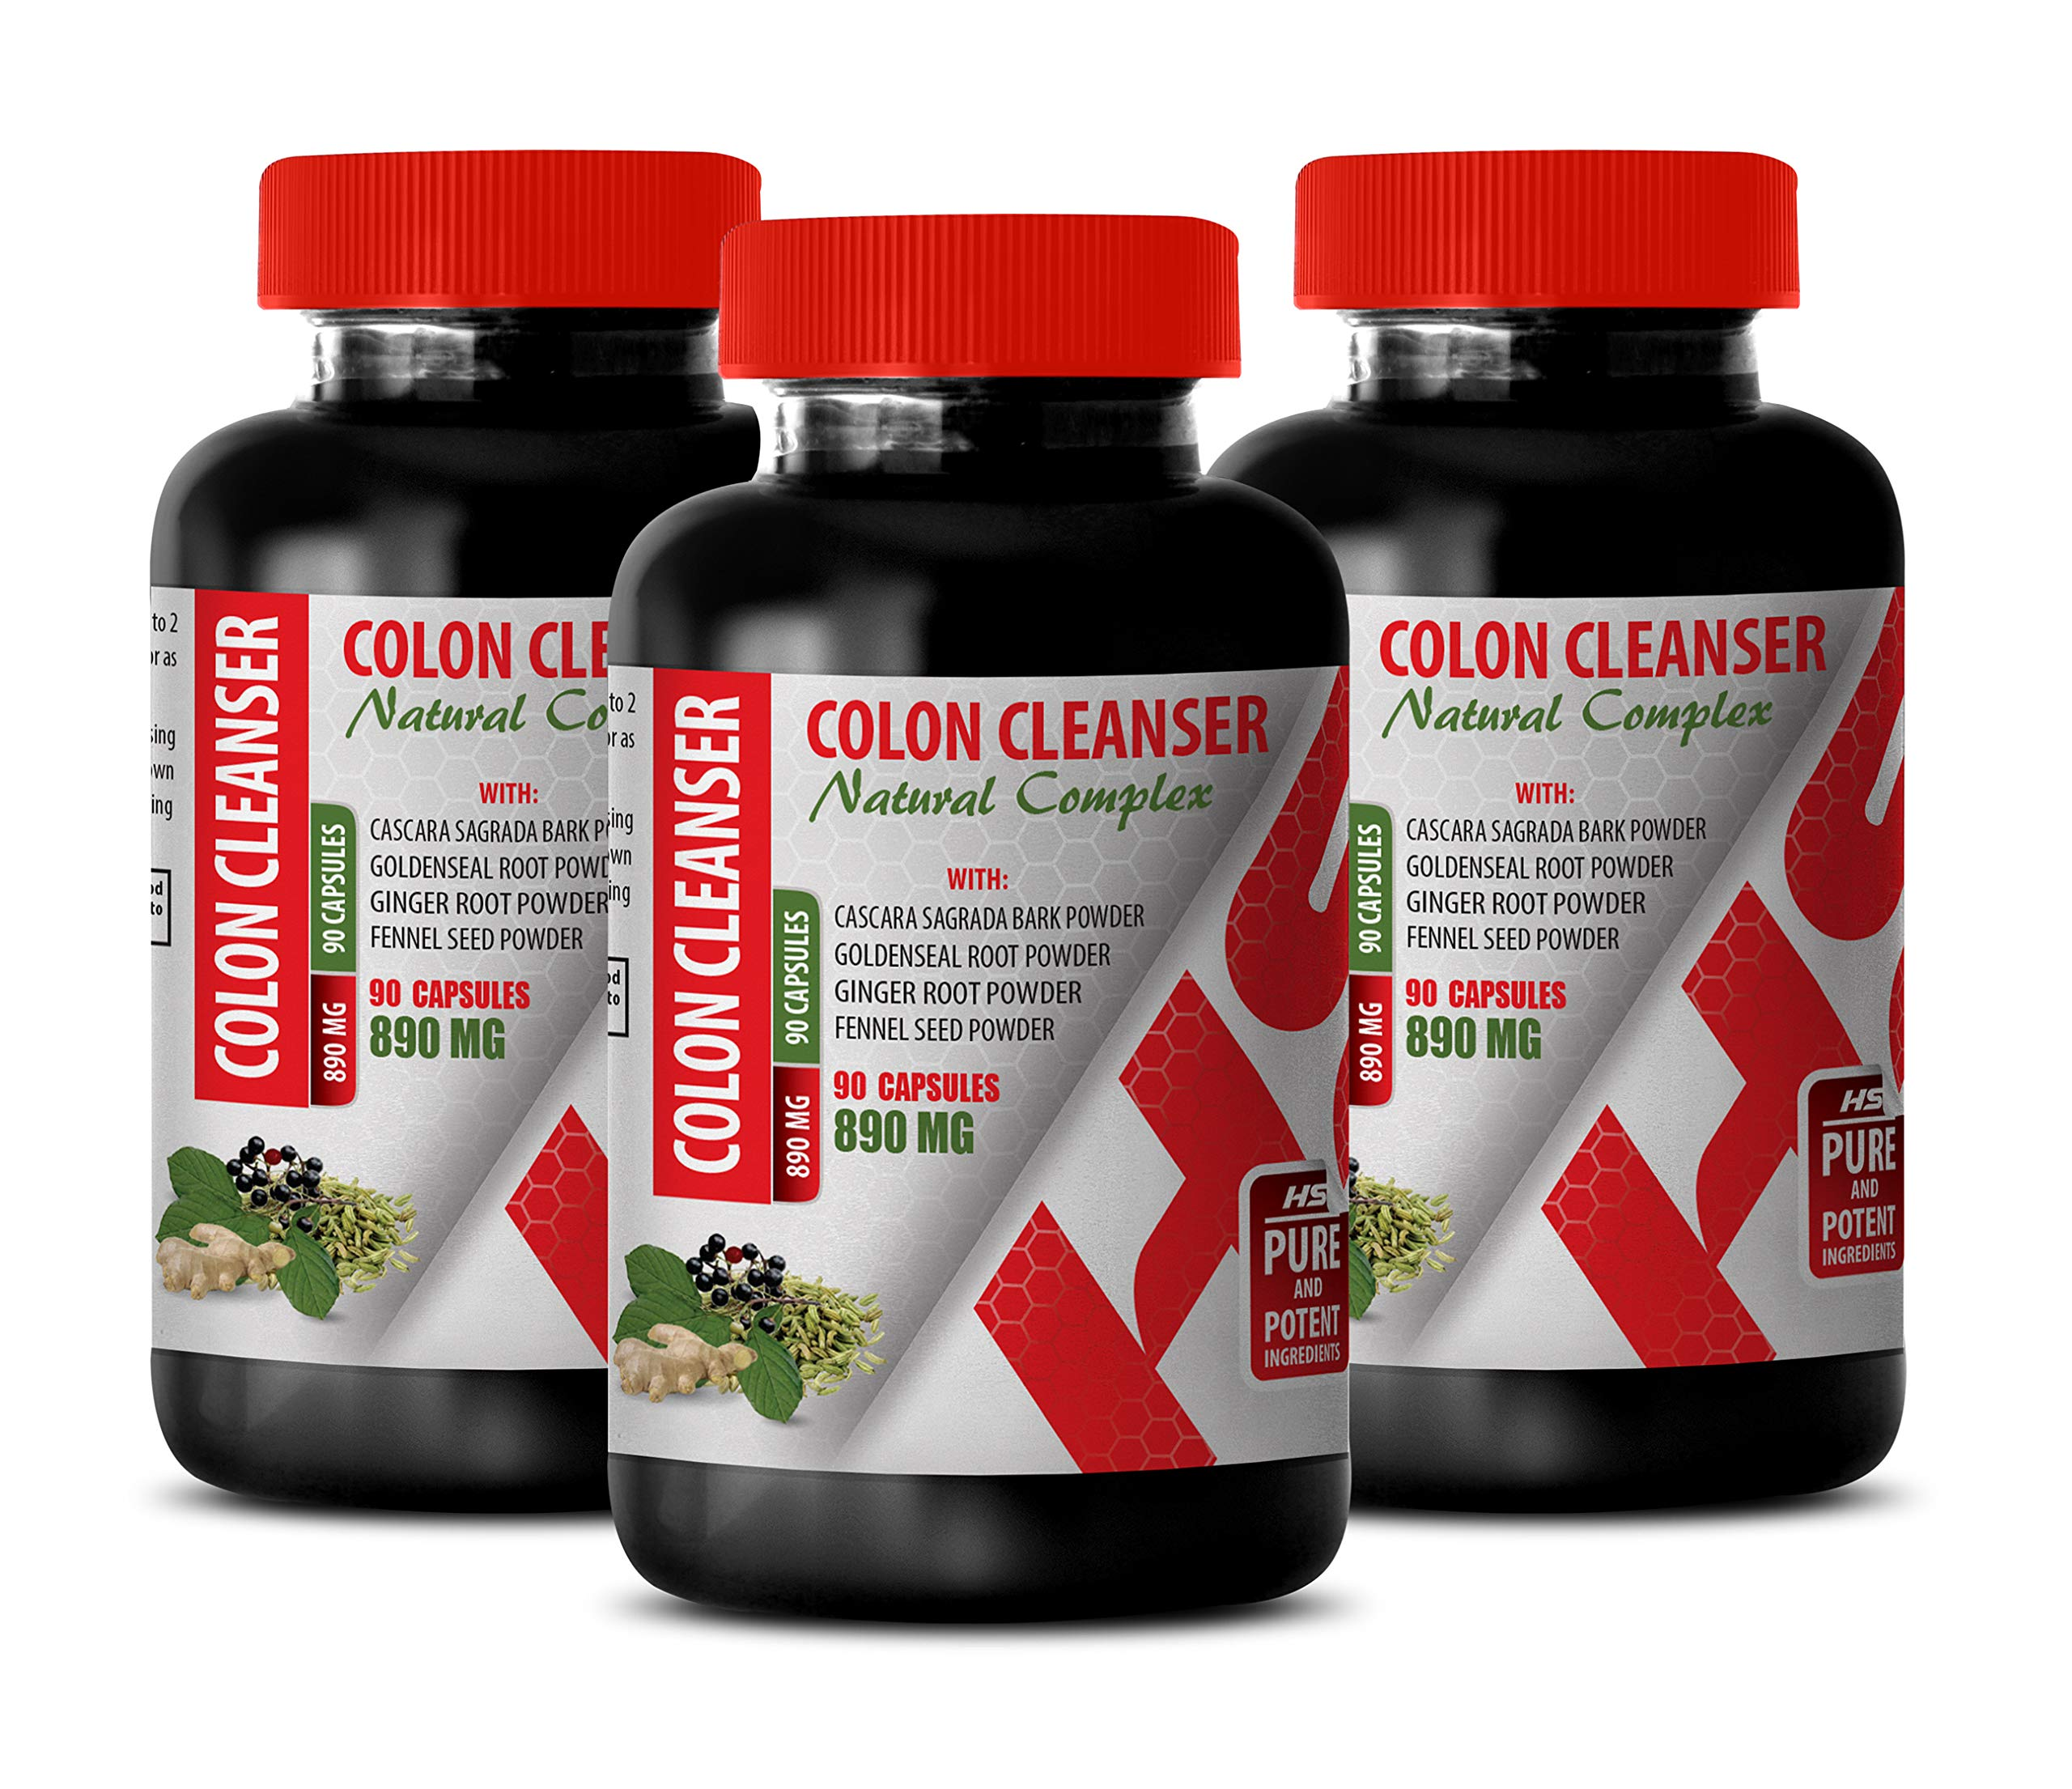 Colon Cleanse with psyllium Husk - Colon Cleanser - Natural Complex - Flaxseed Capsules - 3 Bottles 270 Capsules